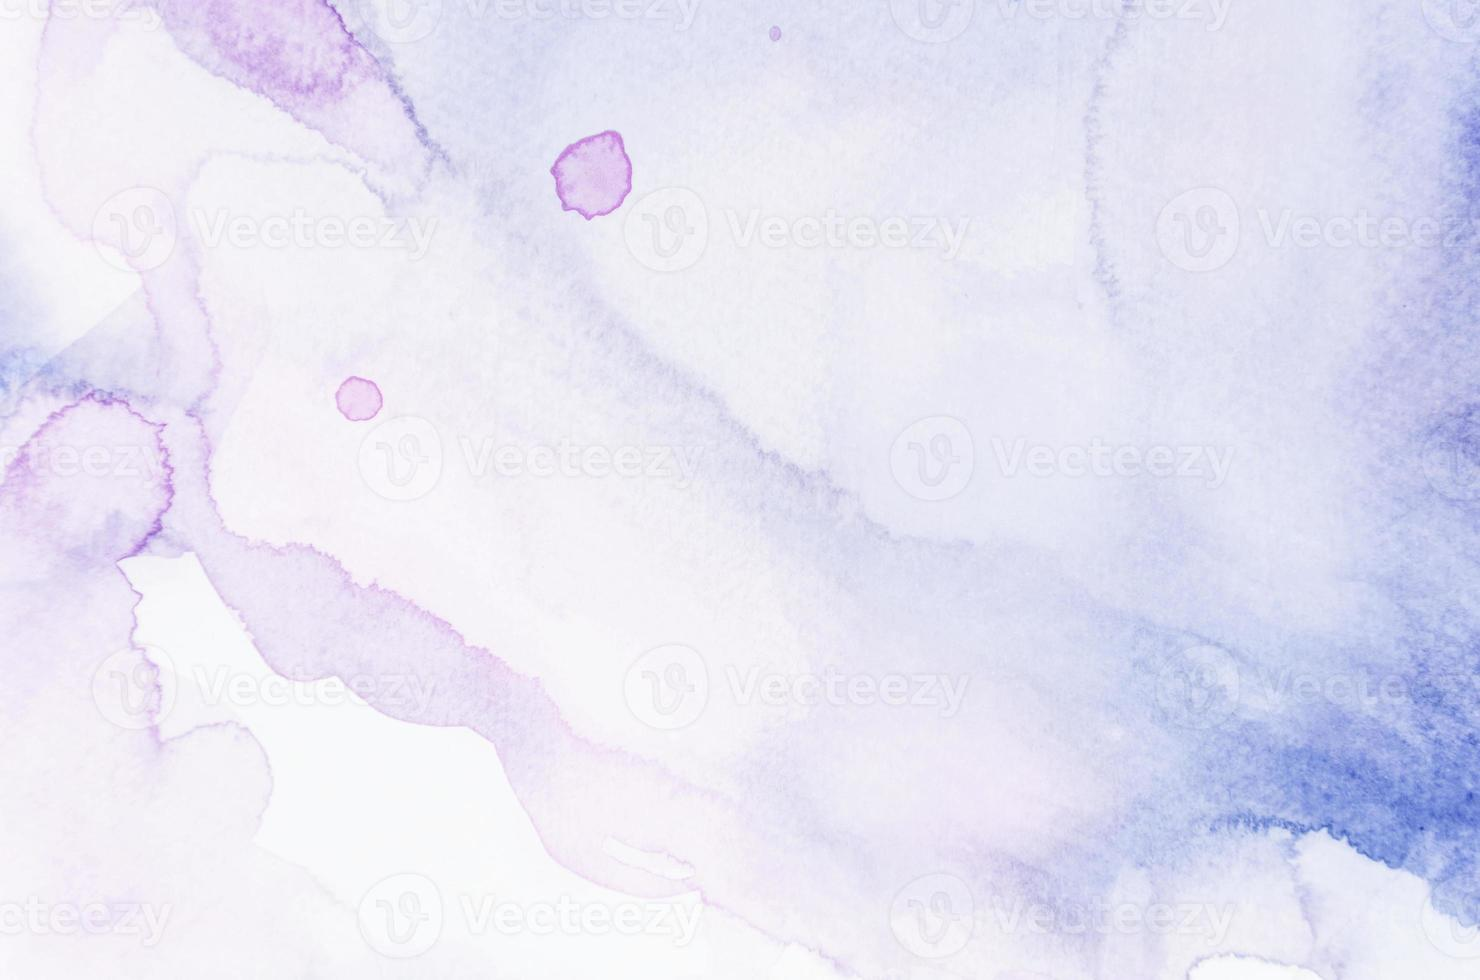 Abstract blue pink watercolor backdrop. Resolution and high quality beautiful photo